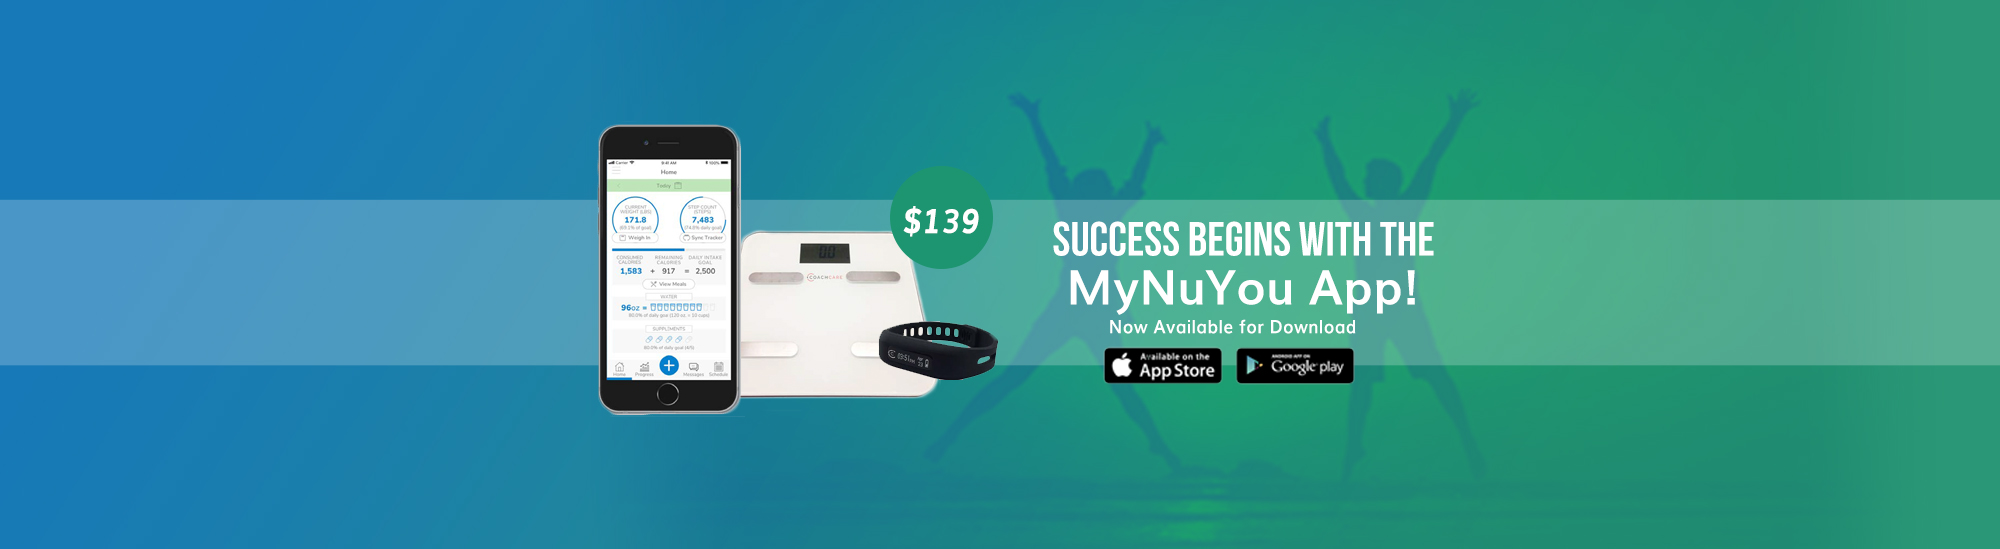 The MYNUYOU app has arrived! Works with a scale and fitbit to help you succeed with your weight loss journey.